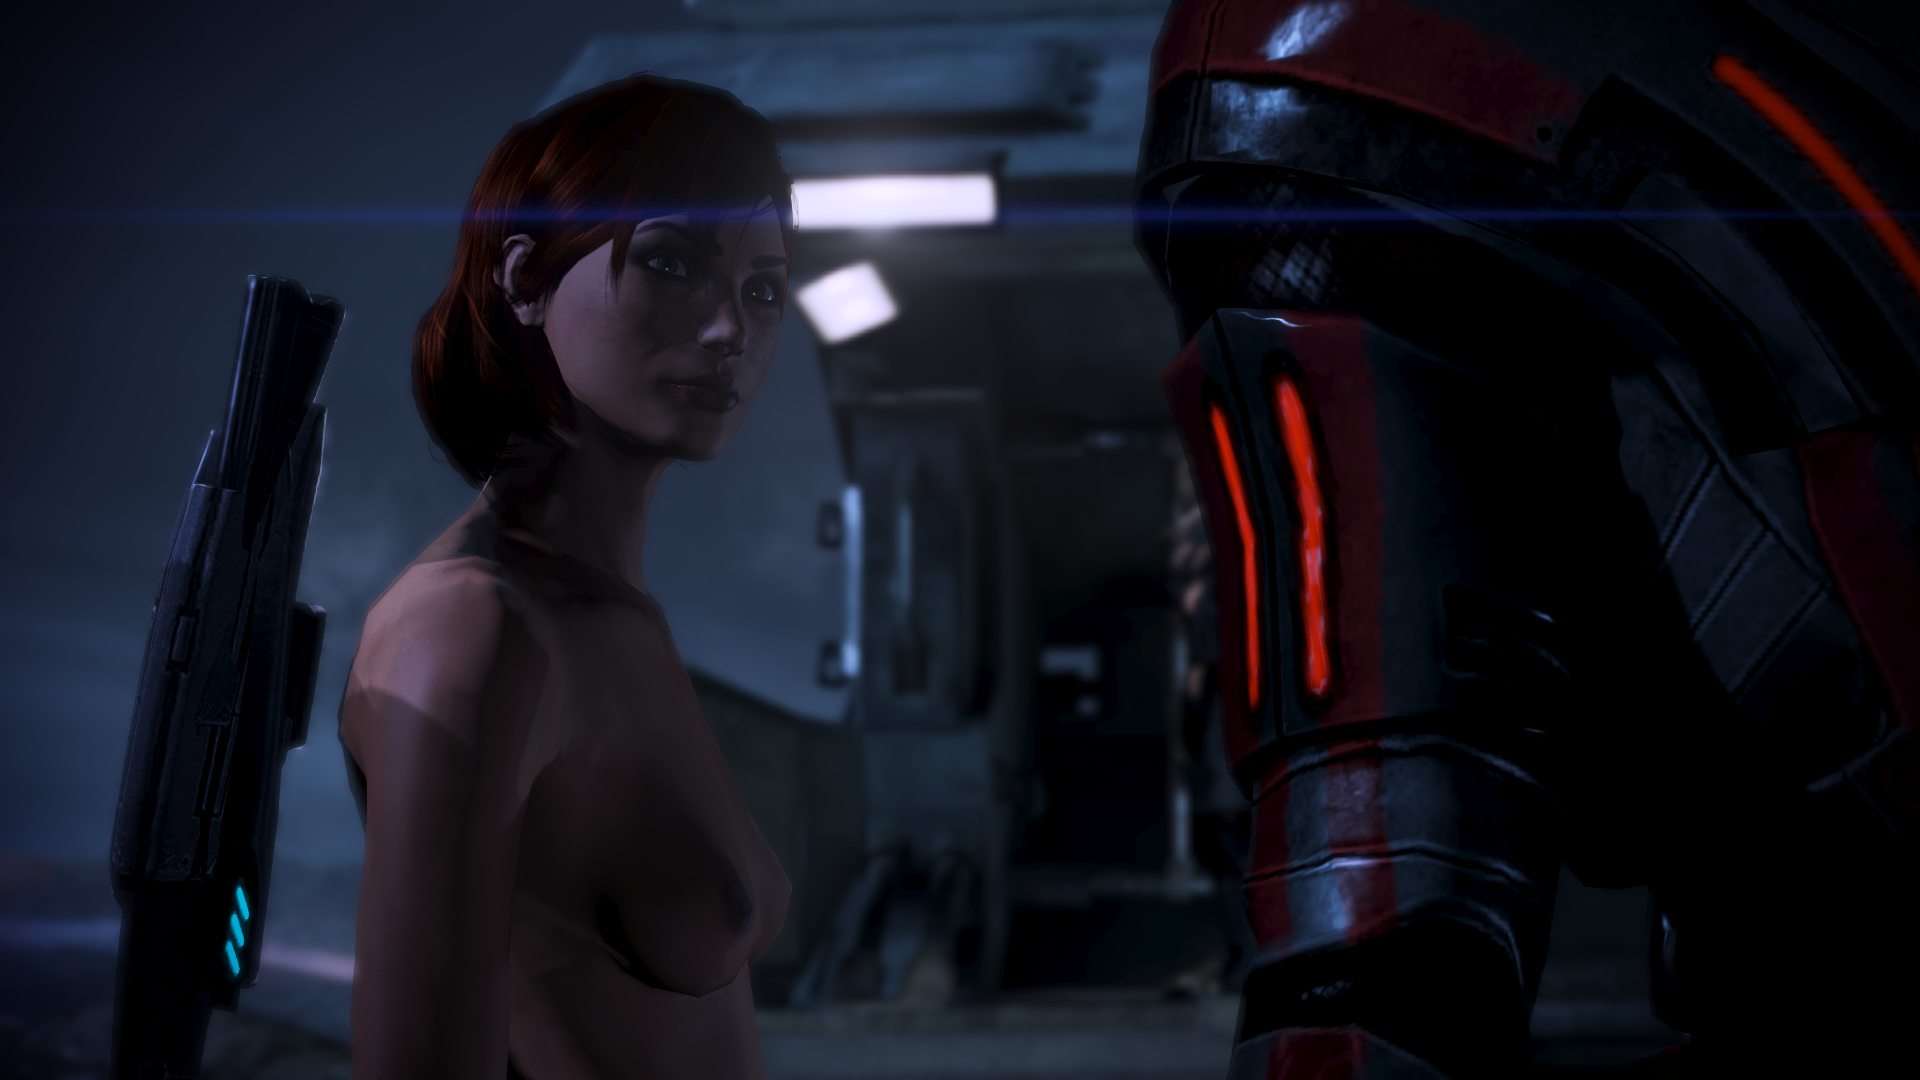 Mass effect1 nude mod sex photos